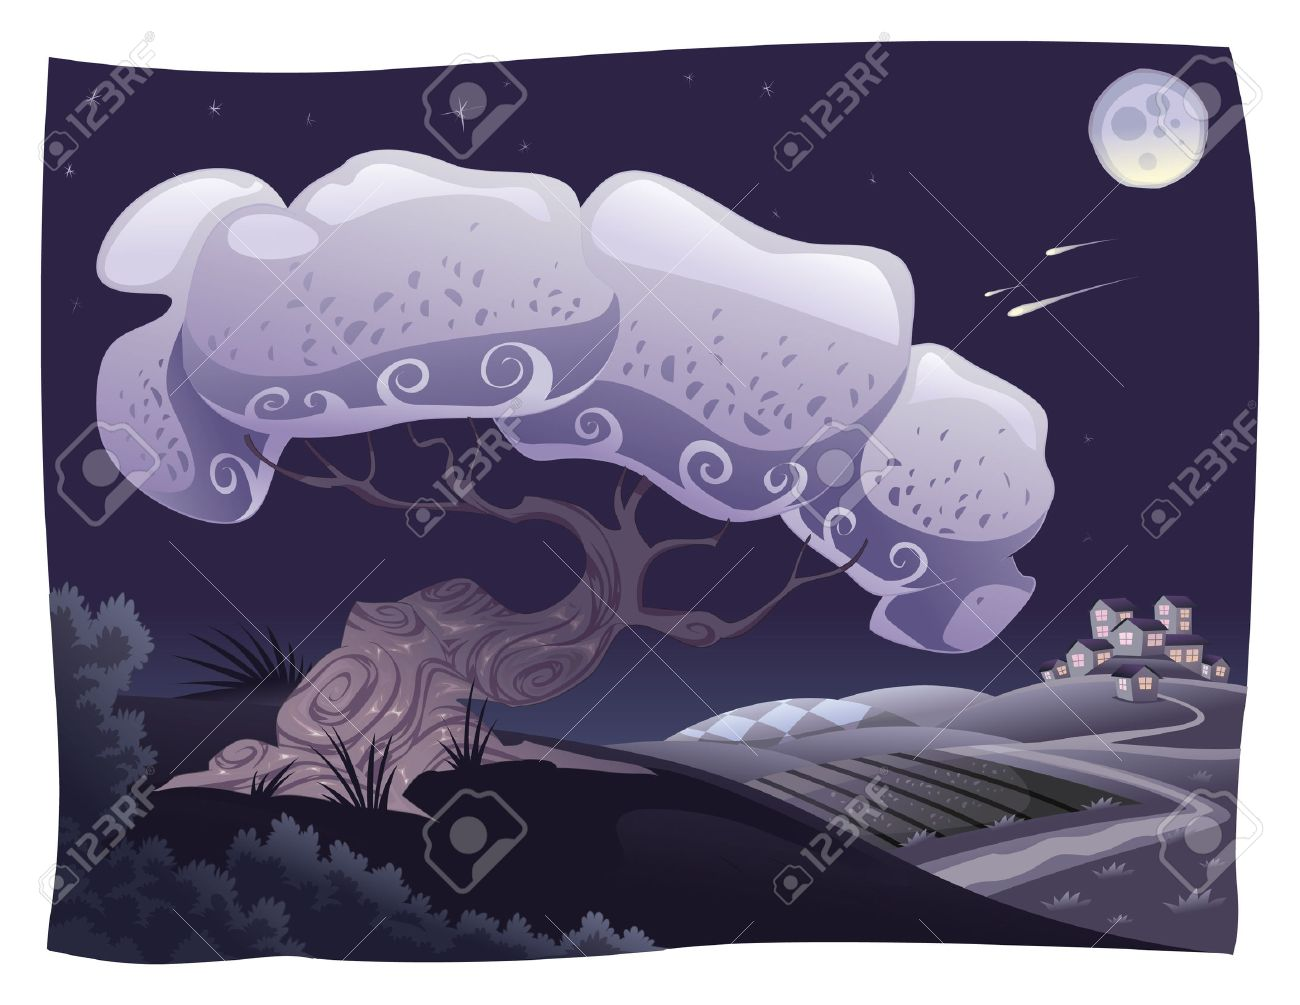 Countryside in the night. cartoon landscape. Objects isolated. Stock Vector - 6648064